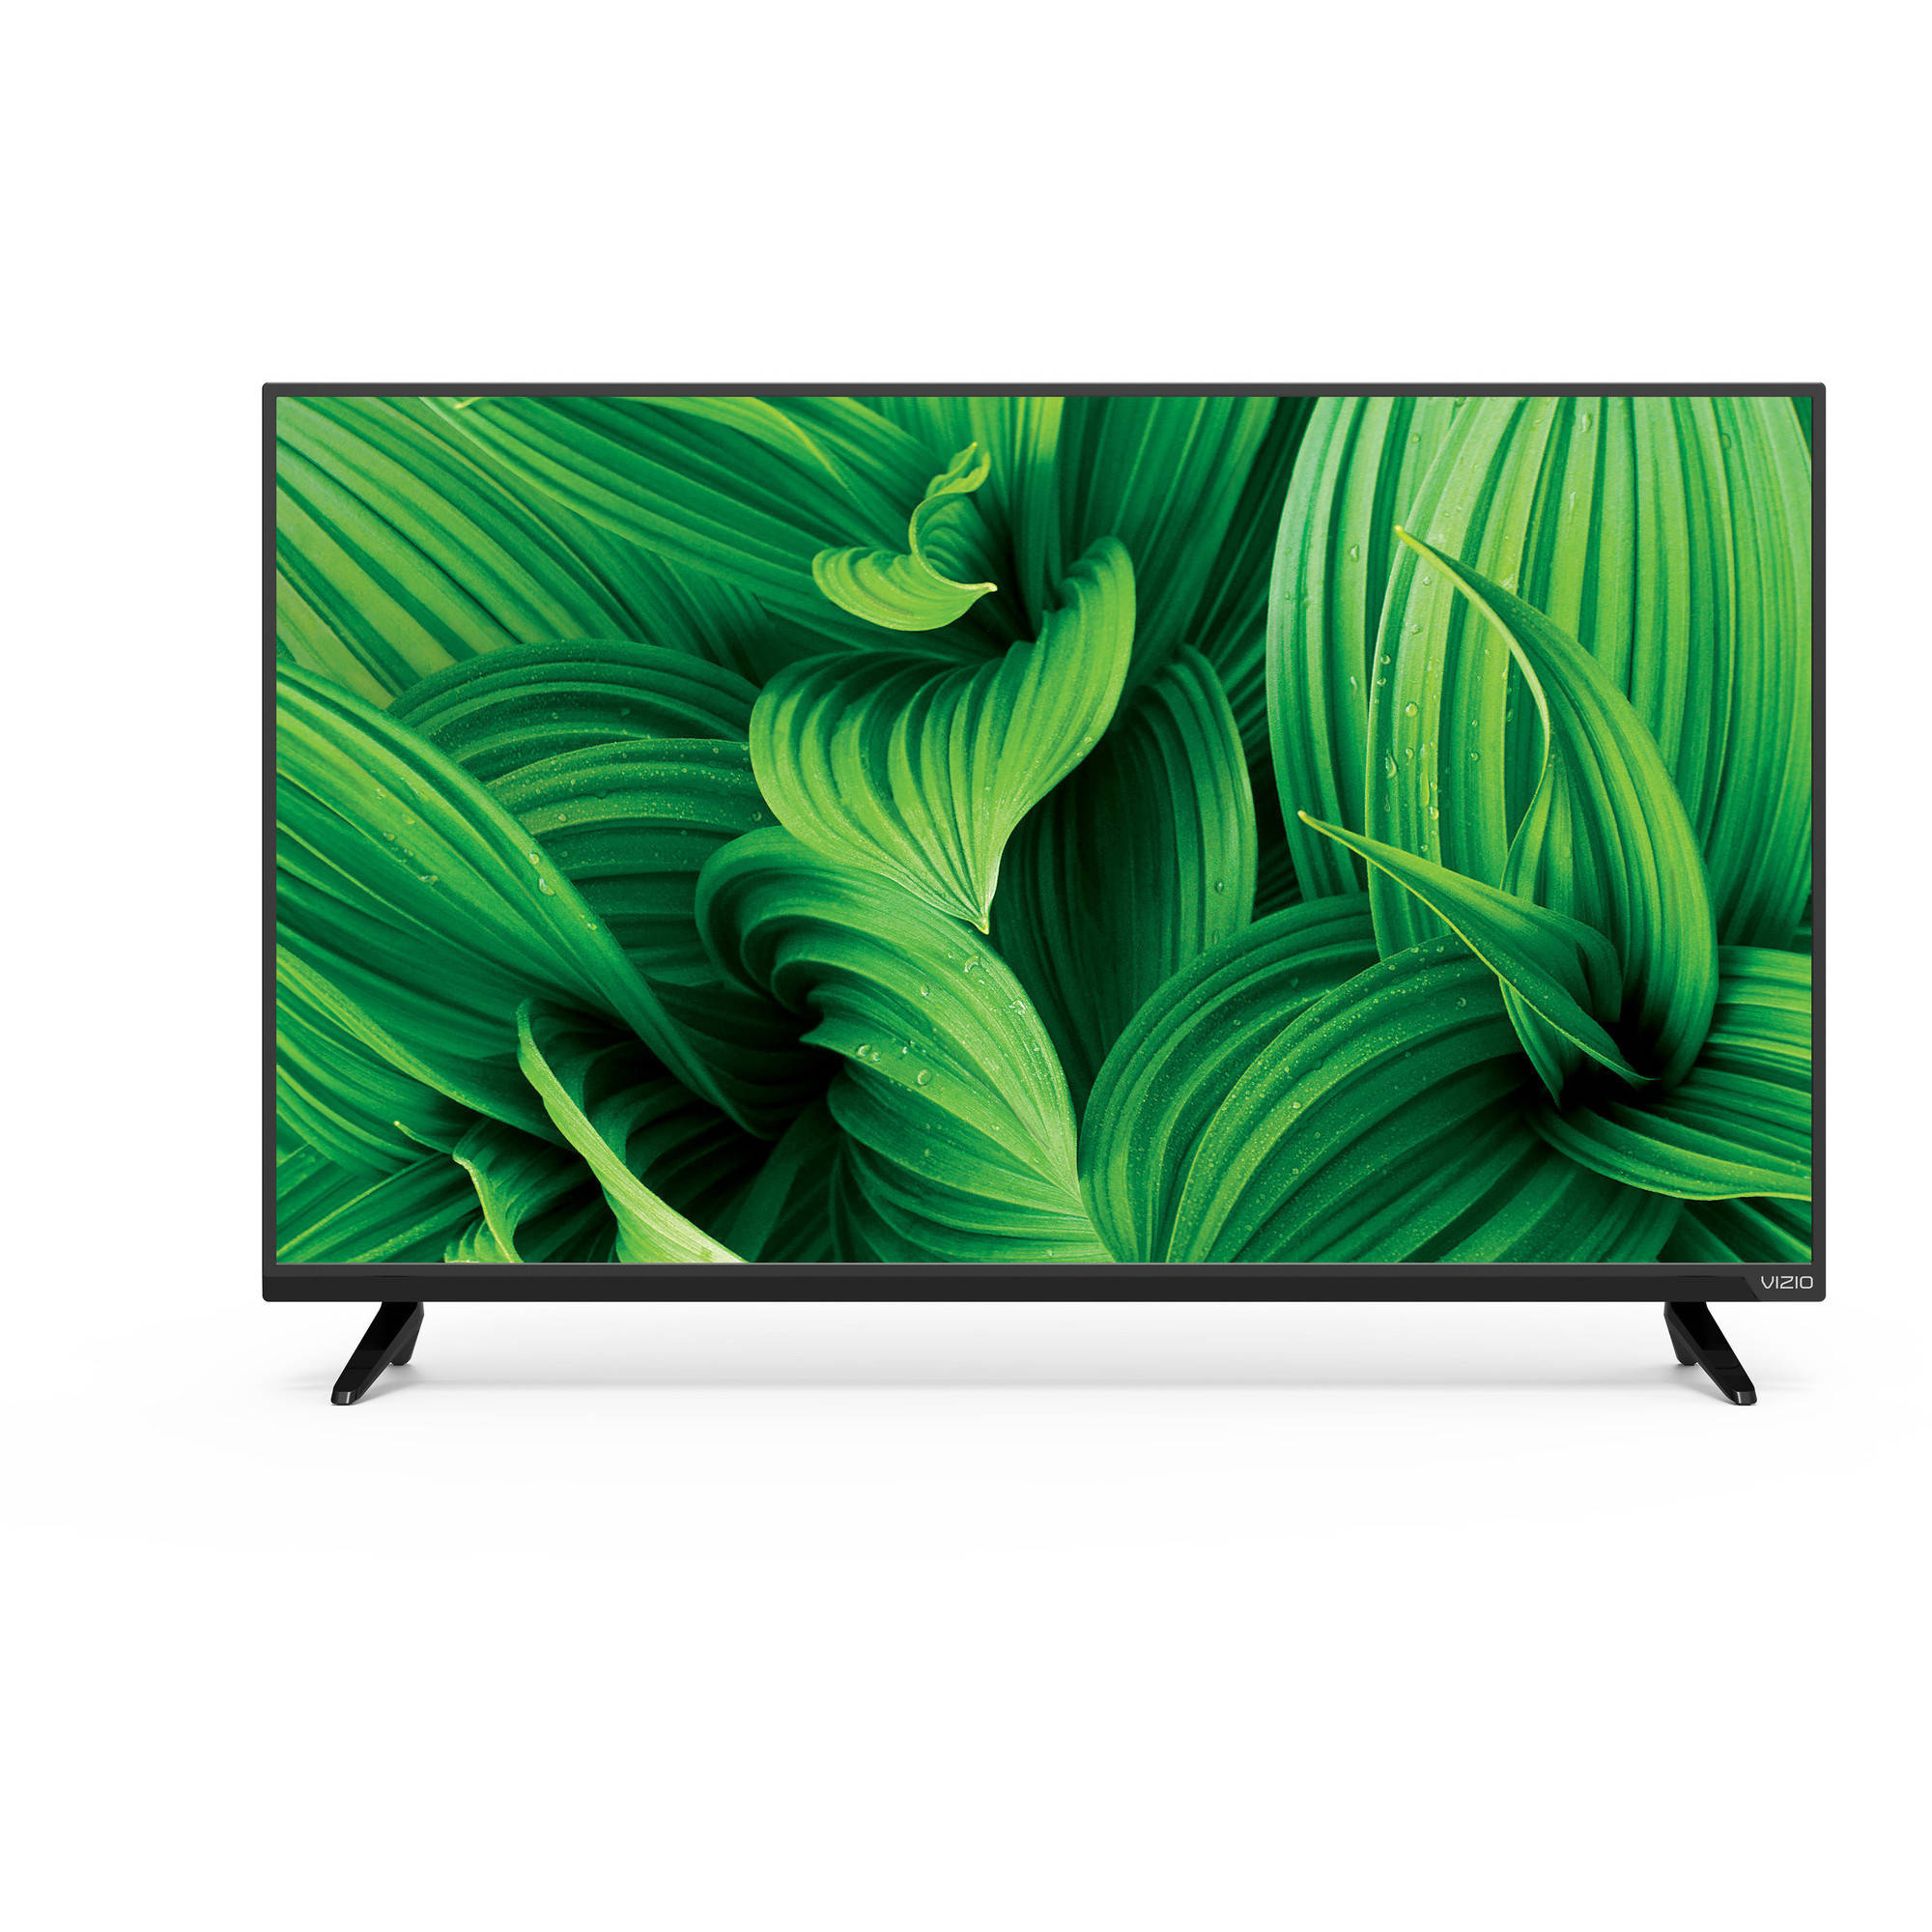 "VIZIO 43"" Class FHD (1080p) Full Array LED TV (D43n-E4)"